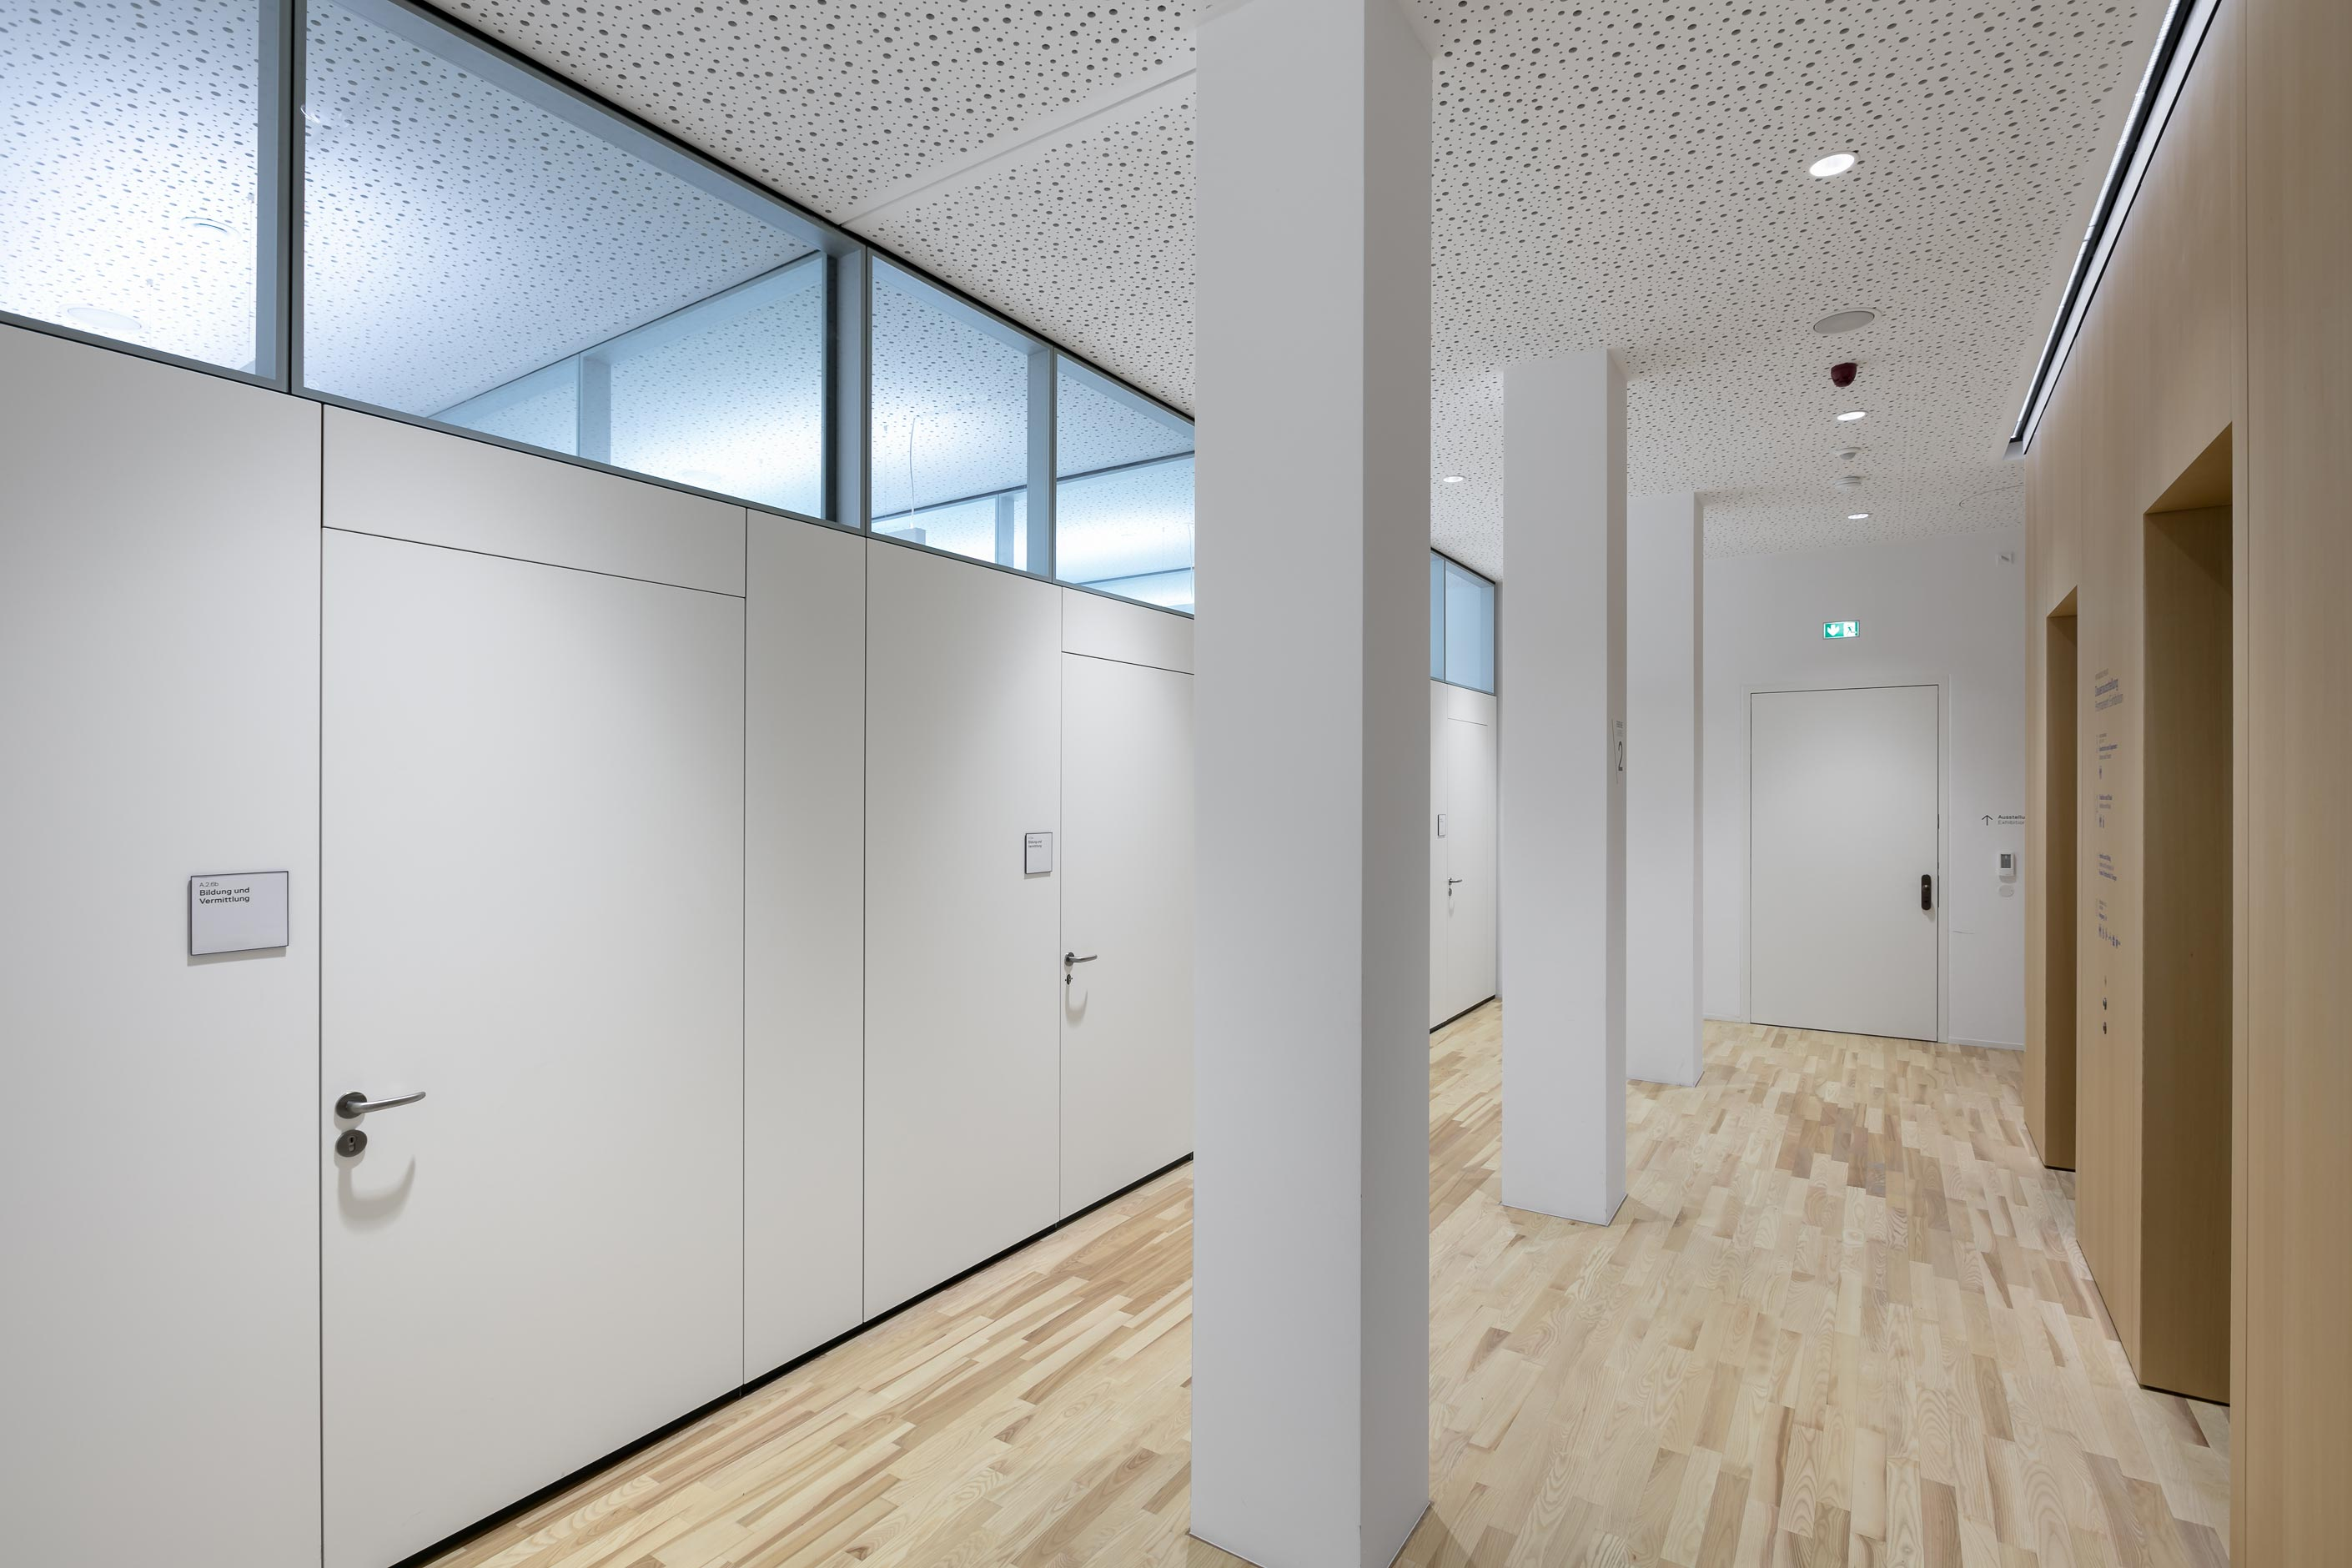 Flush wooden door elements with concealed frames on the corridor side